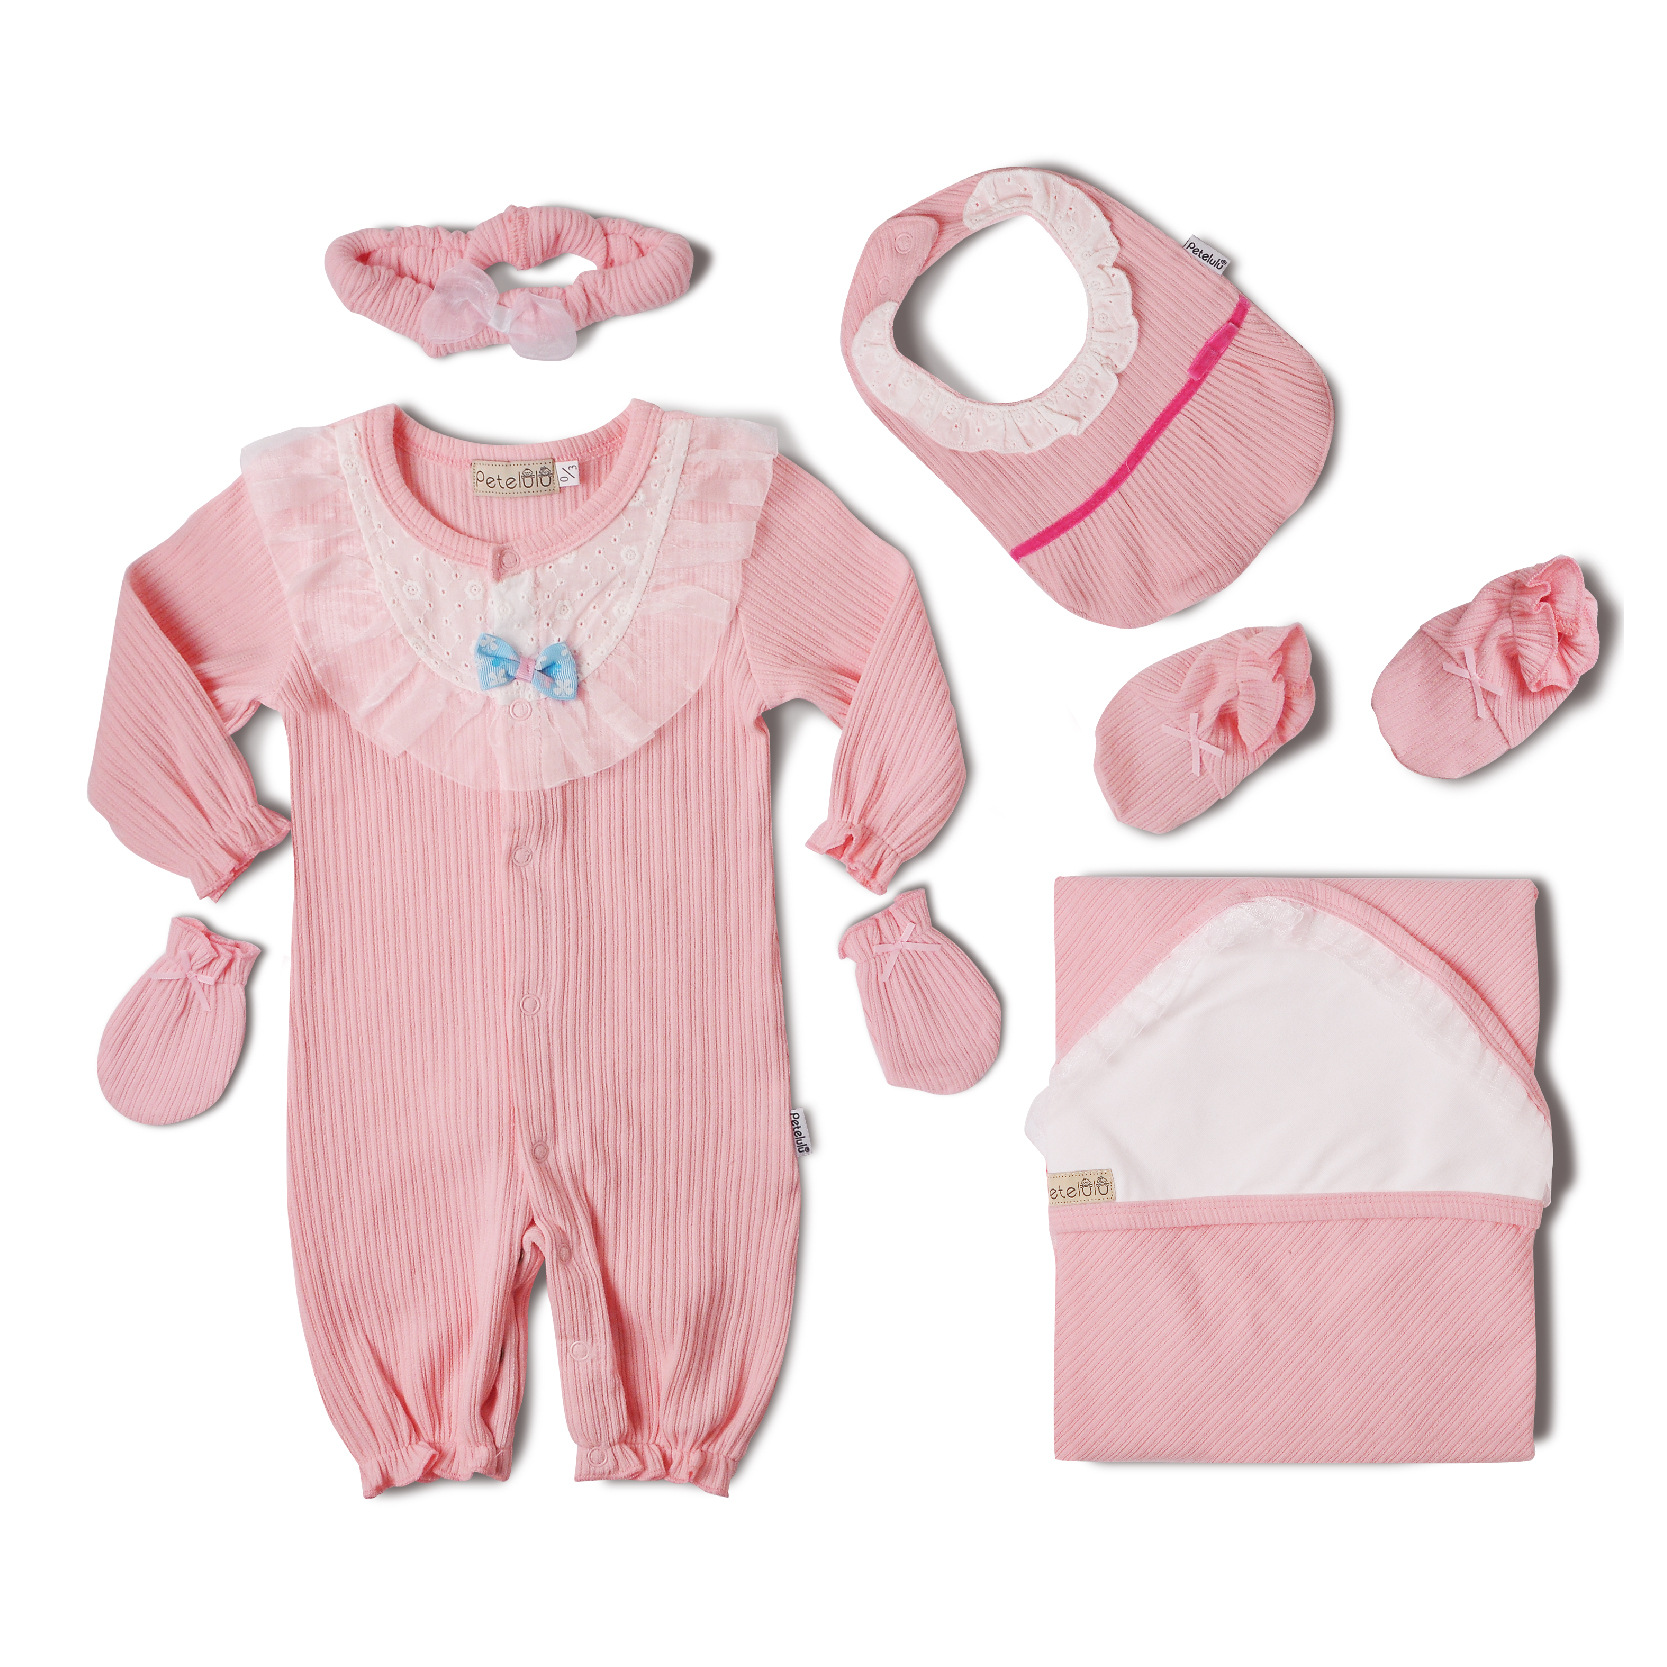 Cotton Sunken Stripe Jacquard New Style Clothes For Babies Infant Gift Set 0-March Pure Cotton Newborns Gift Package